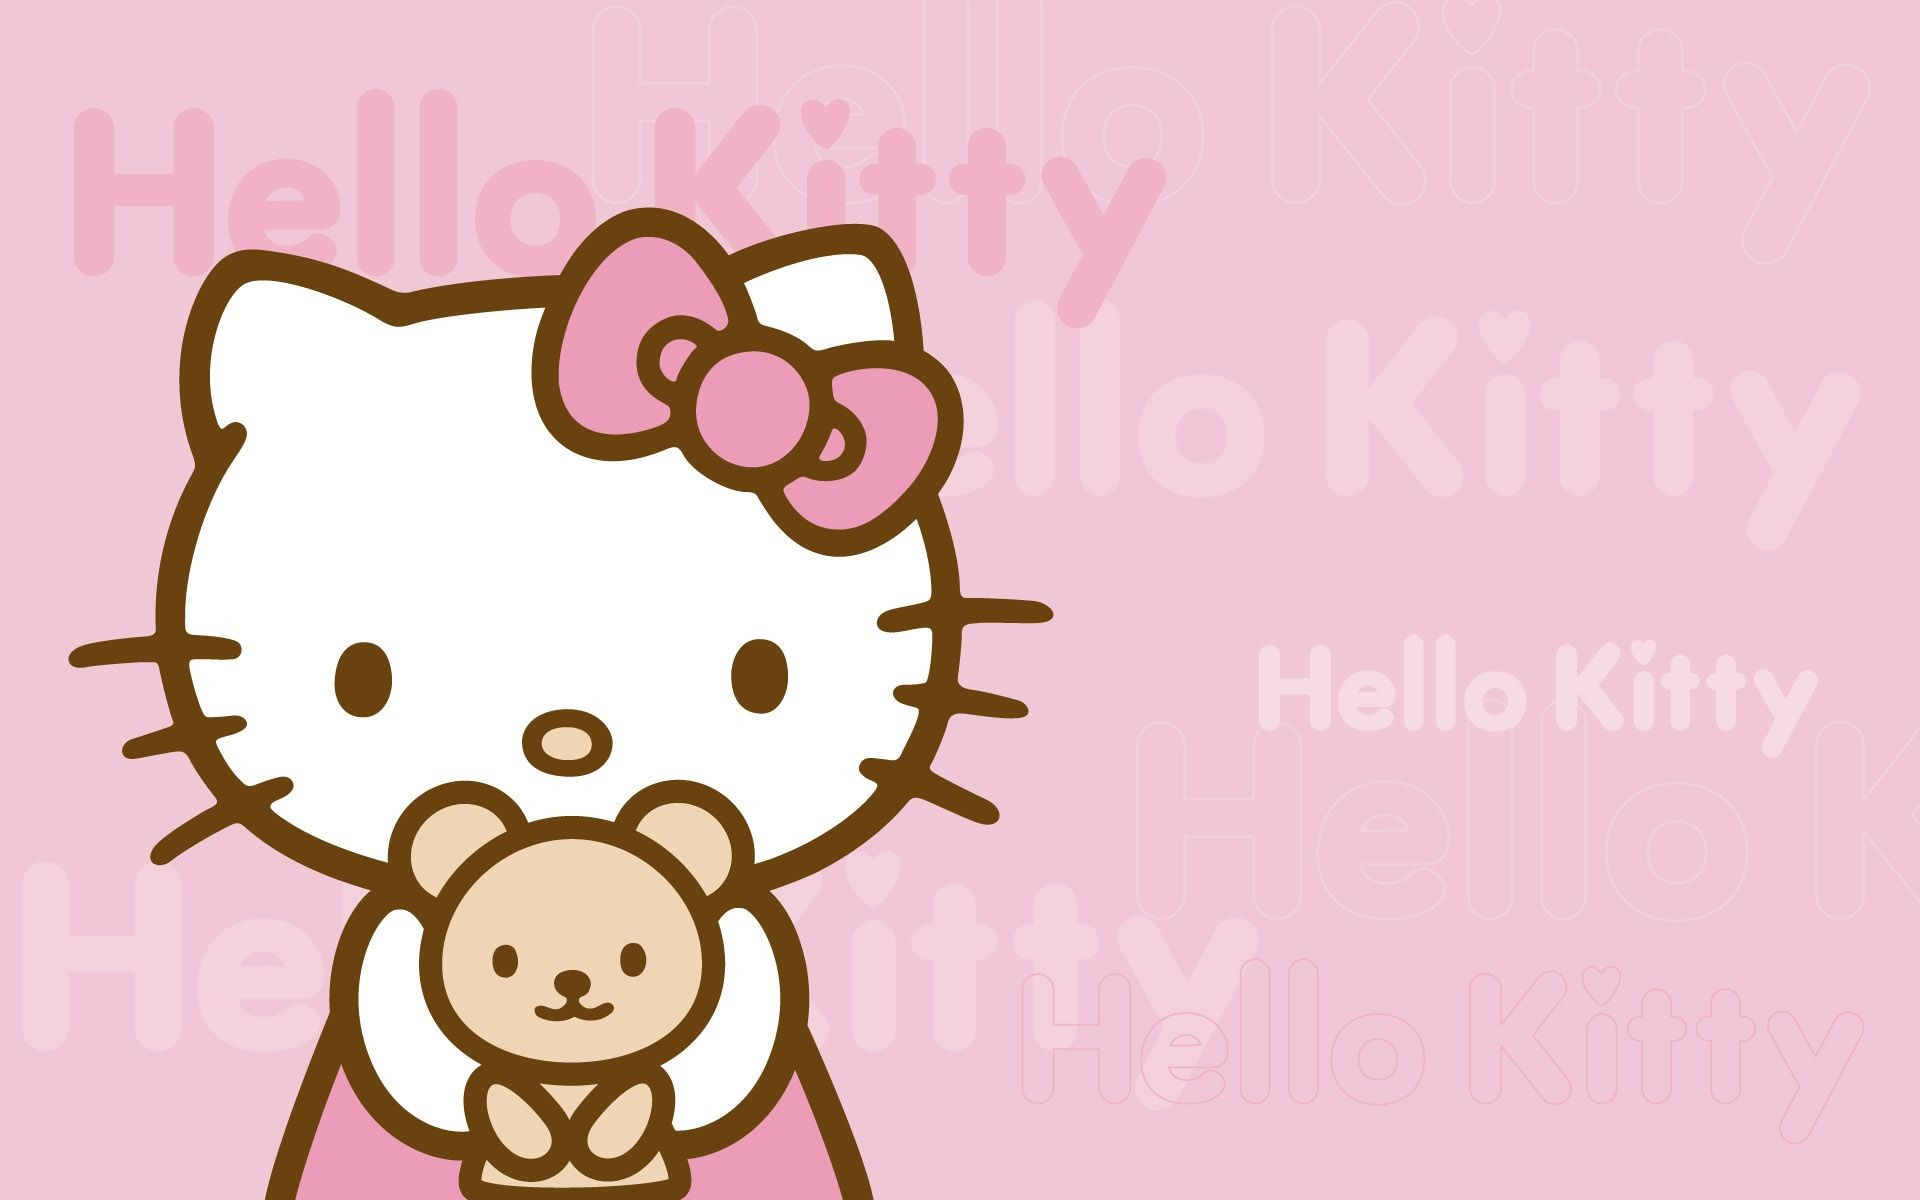 Beautiful Wallpaper Hello Kitty White - 530234-hello-kitty-desktop-background-wallpapers-1920x1200-for-samsung-galaxy  Collection_69333.jpg